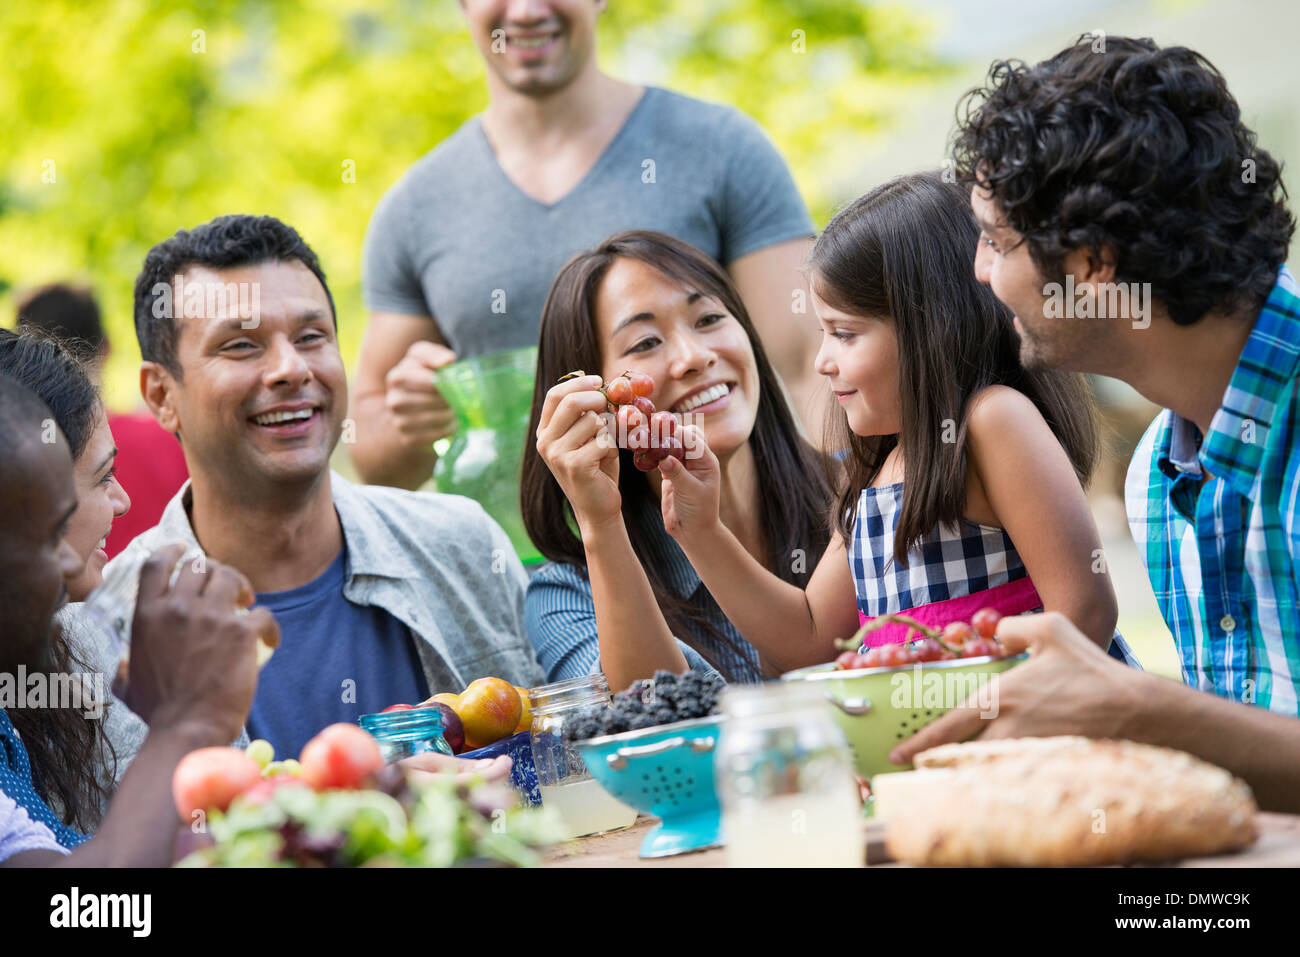 Adults and children around a table in a garden. - Stock Image